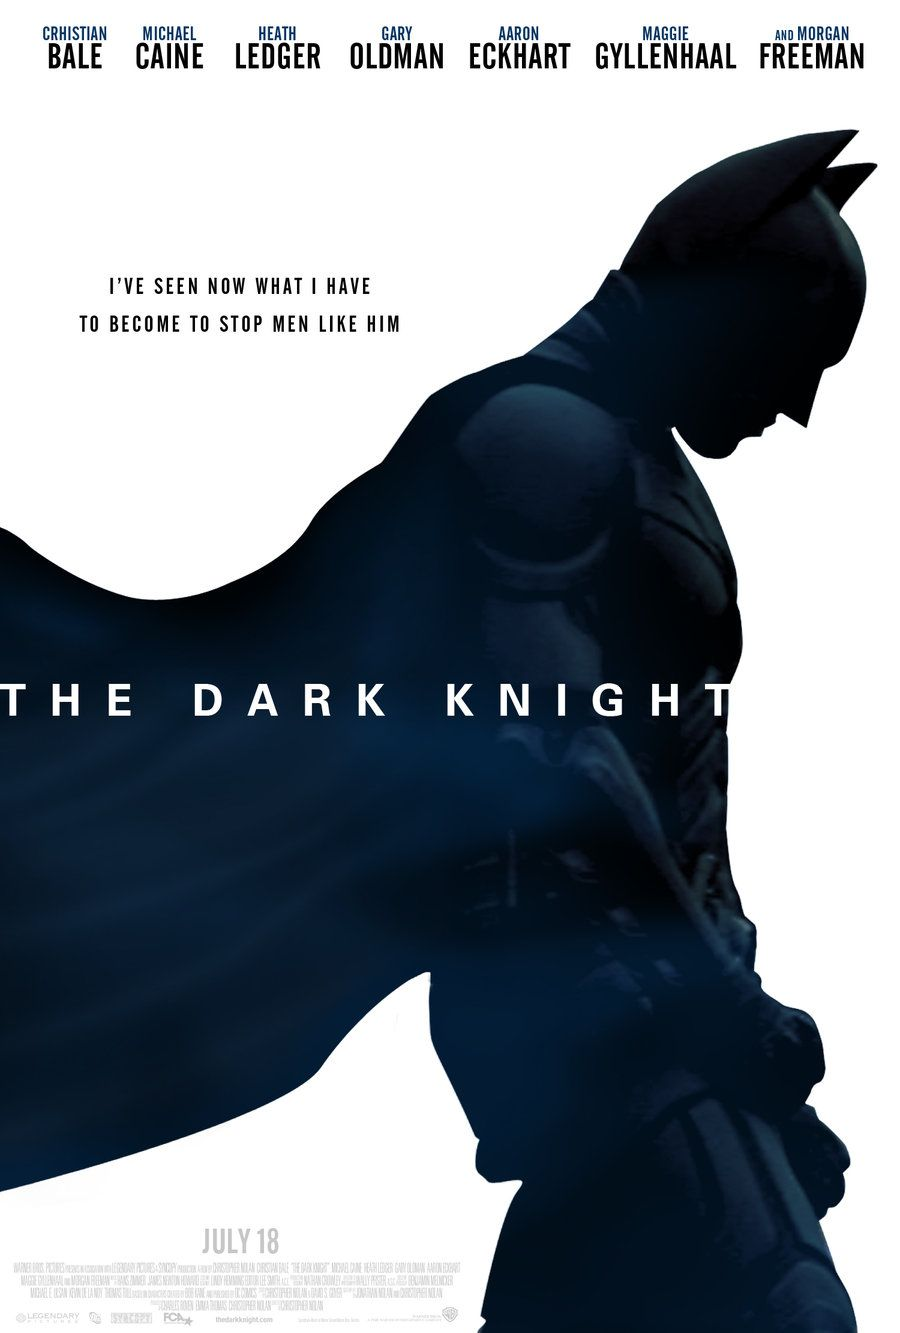 The Dark Knight Movie Poster With Images The Dark Knight